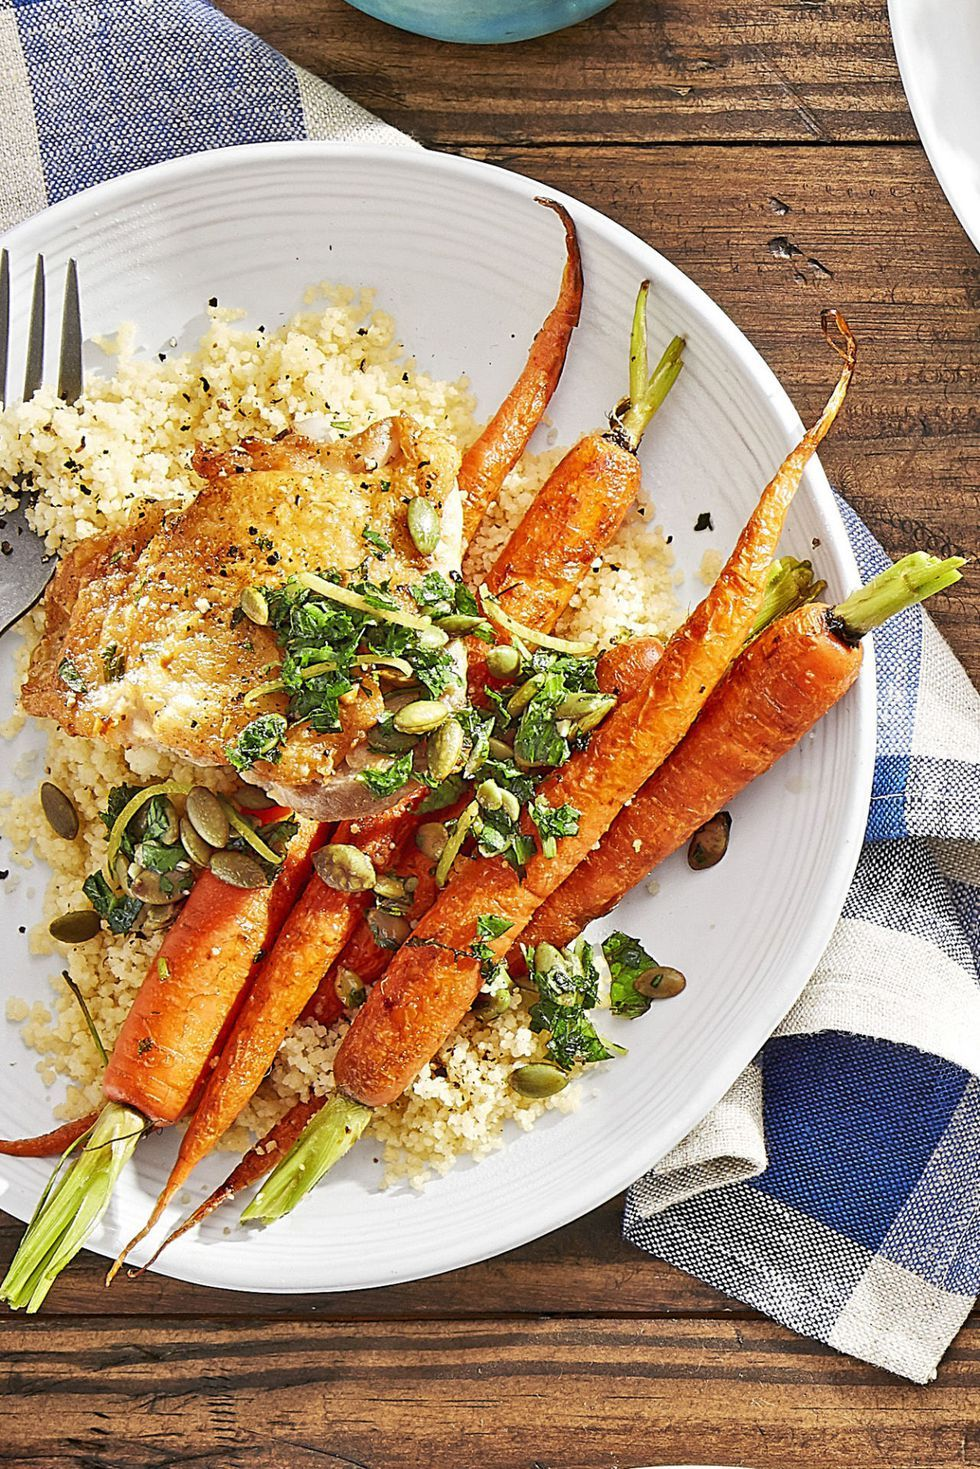 Crispy Chicken With Roasted Carrots And Couscous Recipe Romantic Dinner Recipes Easy Carrot Recipes Romantic Meals